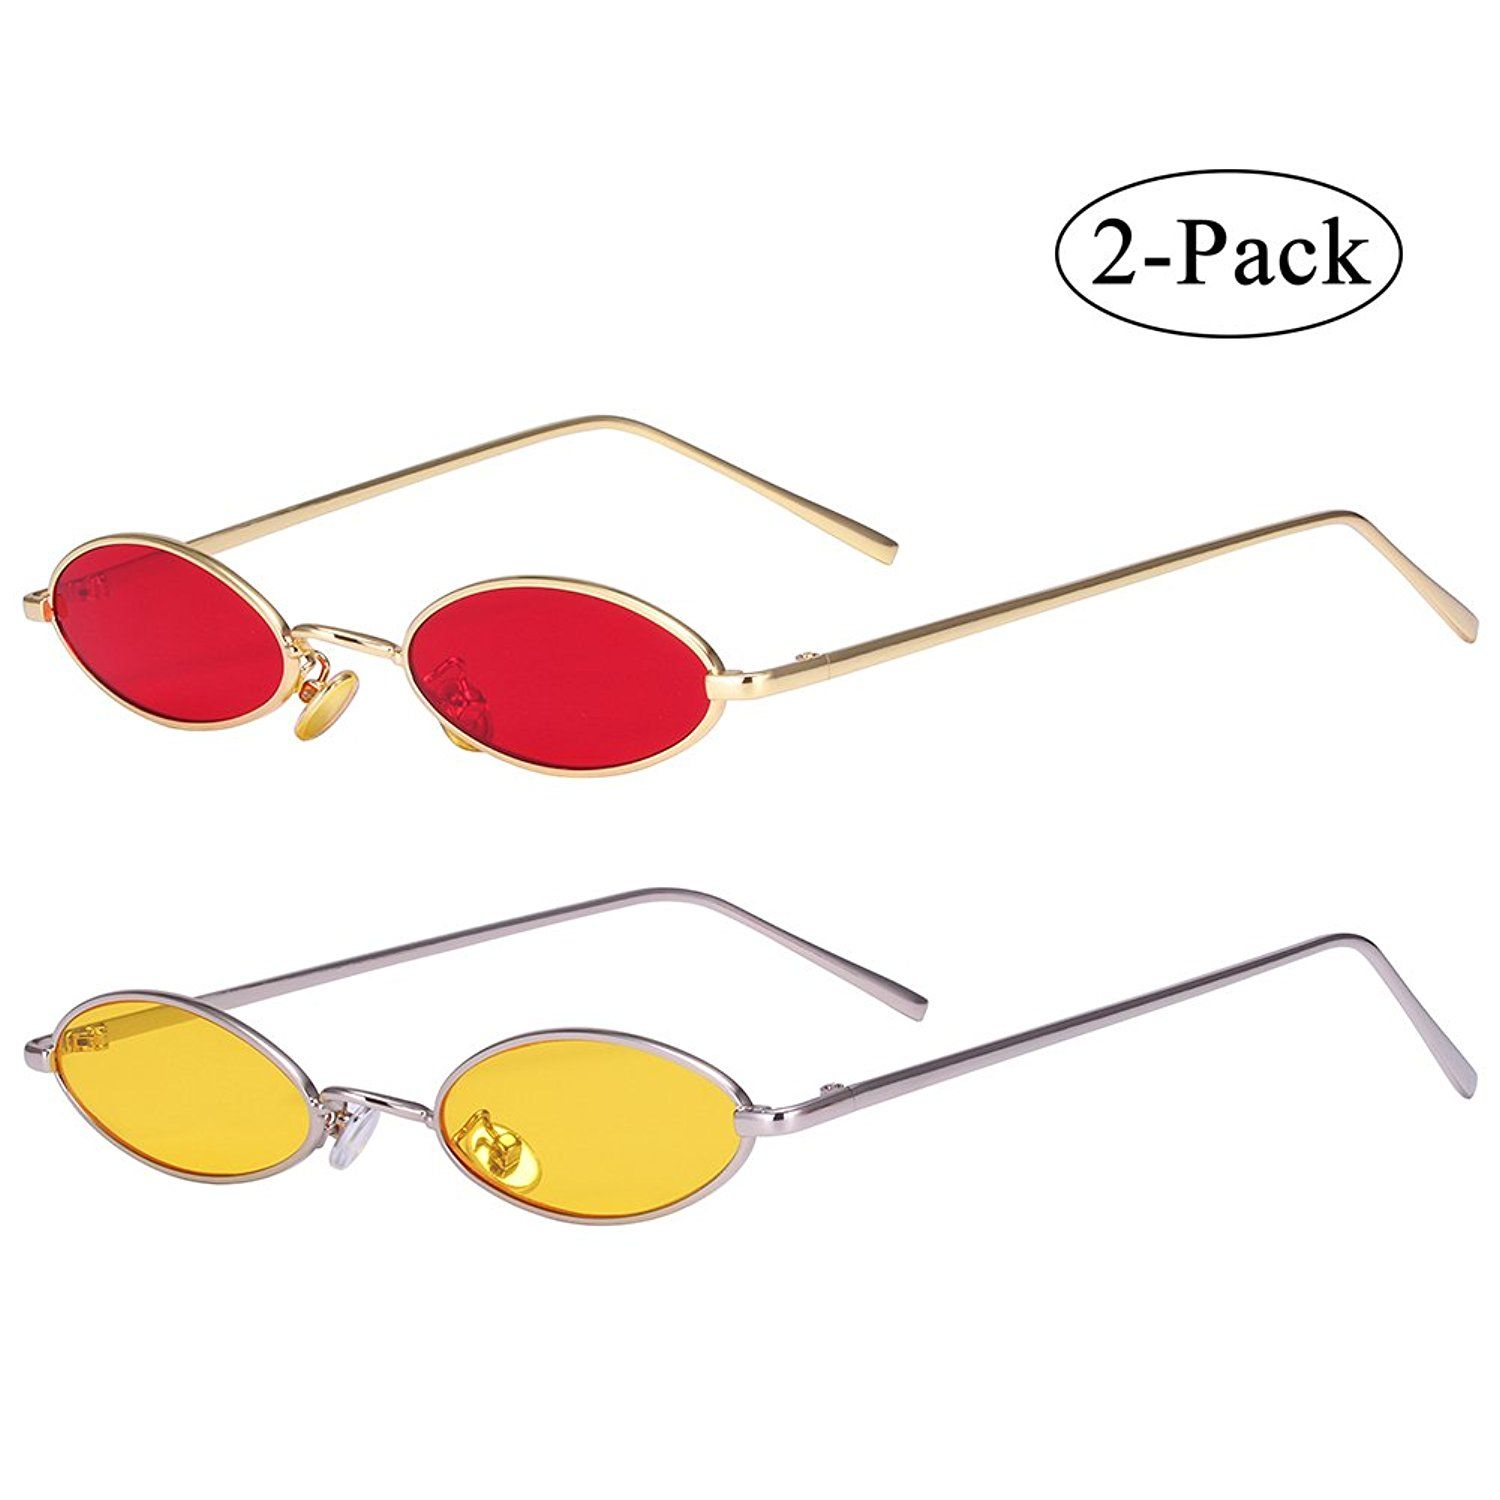 07018012ff AOOFFIV Vintage Slender Oval Sunglasses Small Metal Frame Candy Colors …